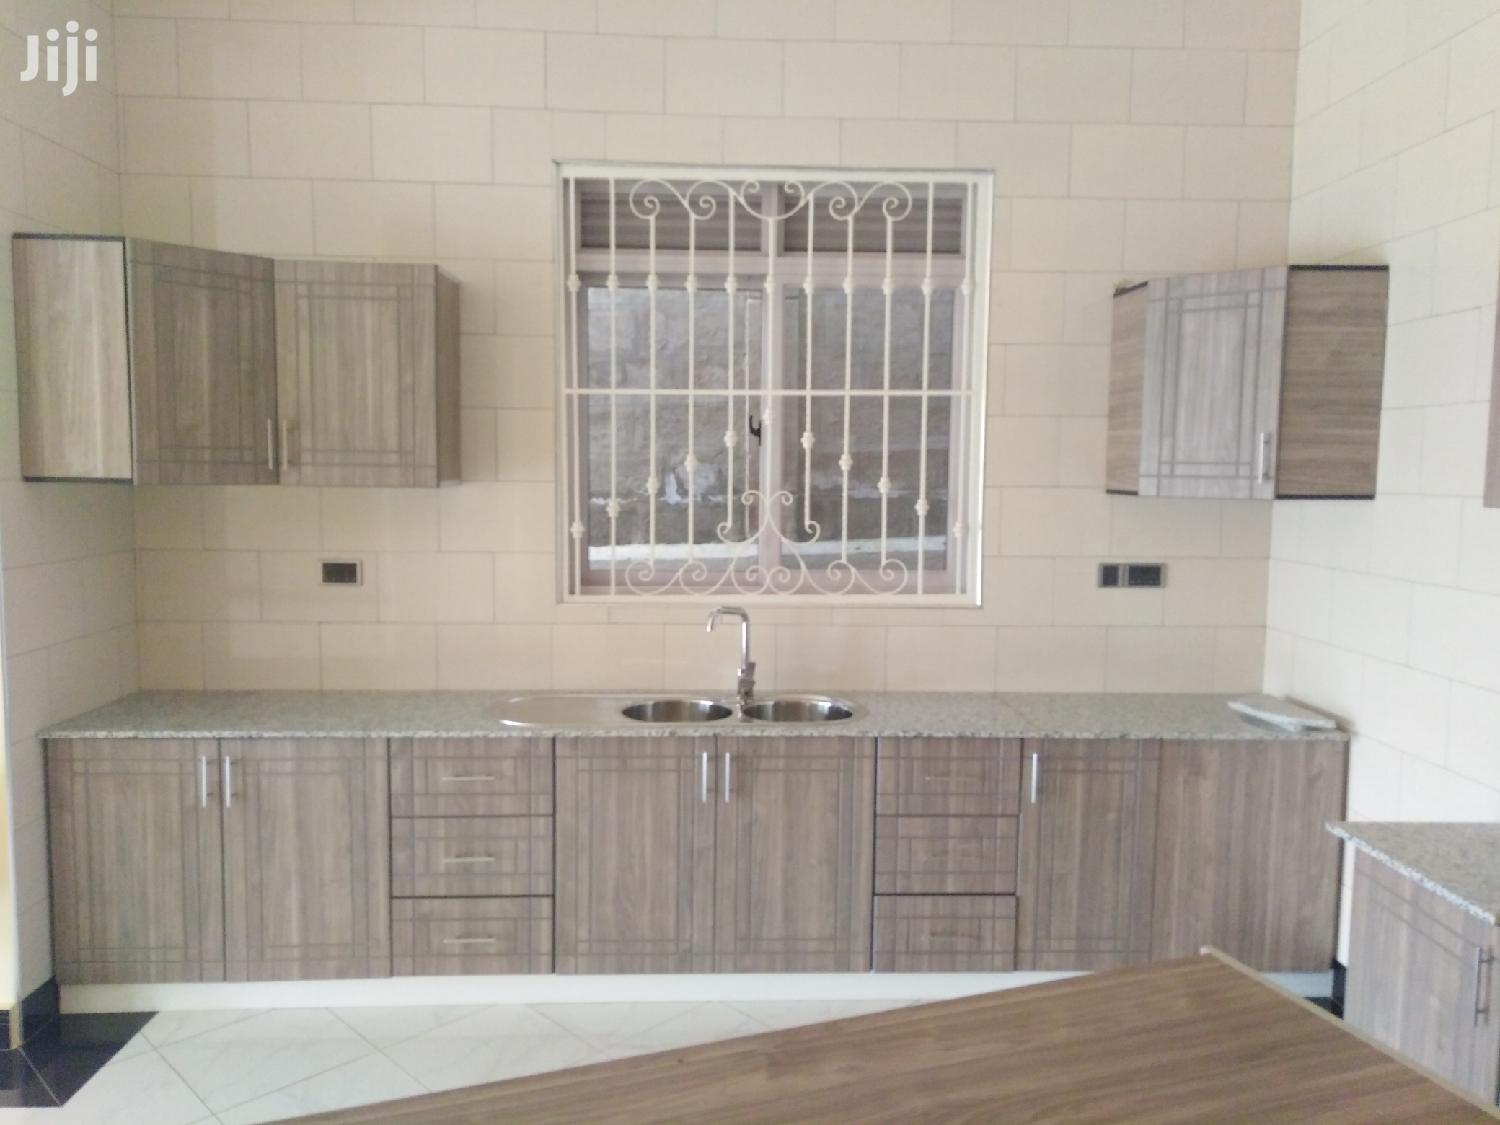 Bunga Brand New 4 Bedroom House For Rent | Houses & Apartments For Rent for sale in Kampala, Central Region, Uganda